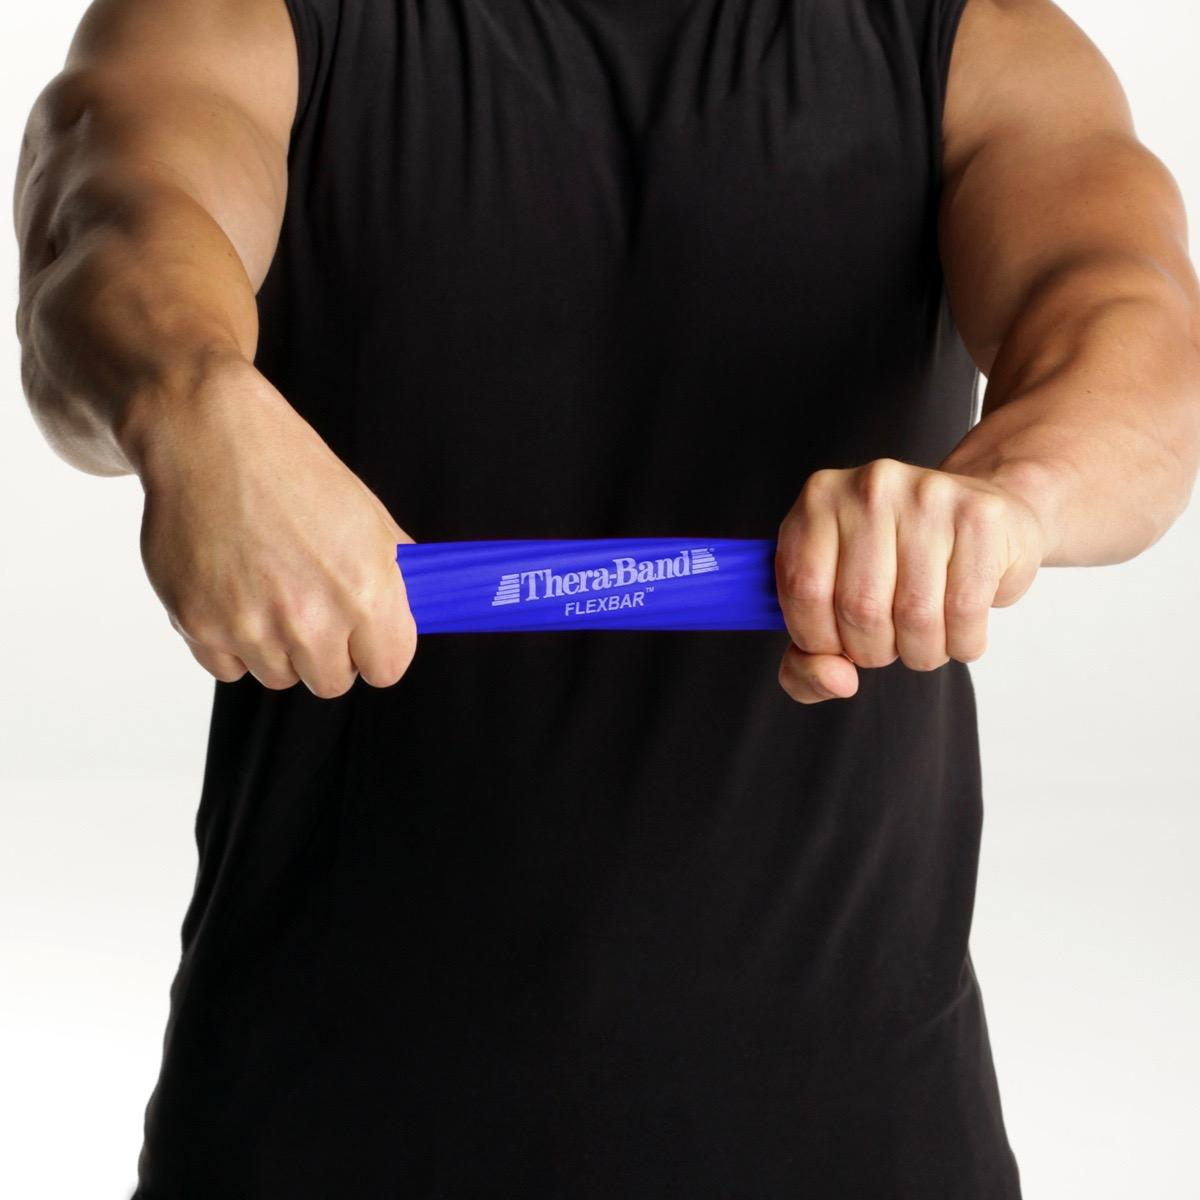 Theraband Flexbar Review | Does This Rubber Bar Fix Tennis ...